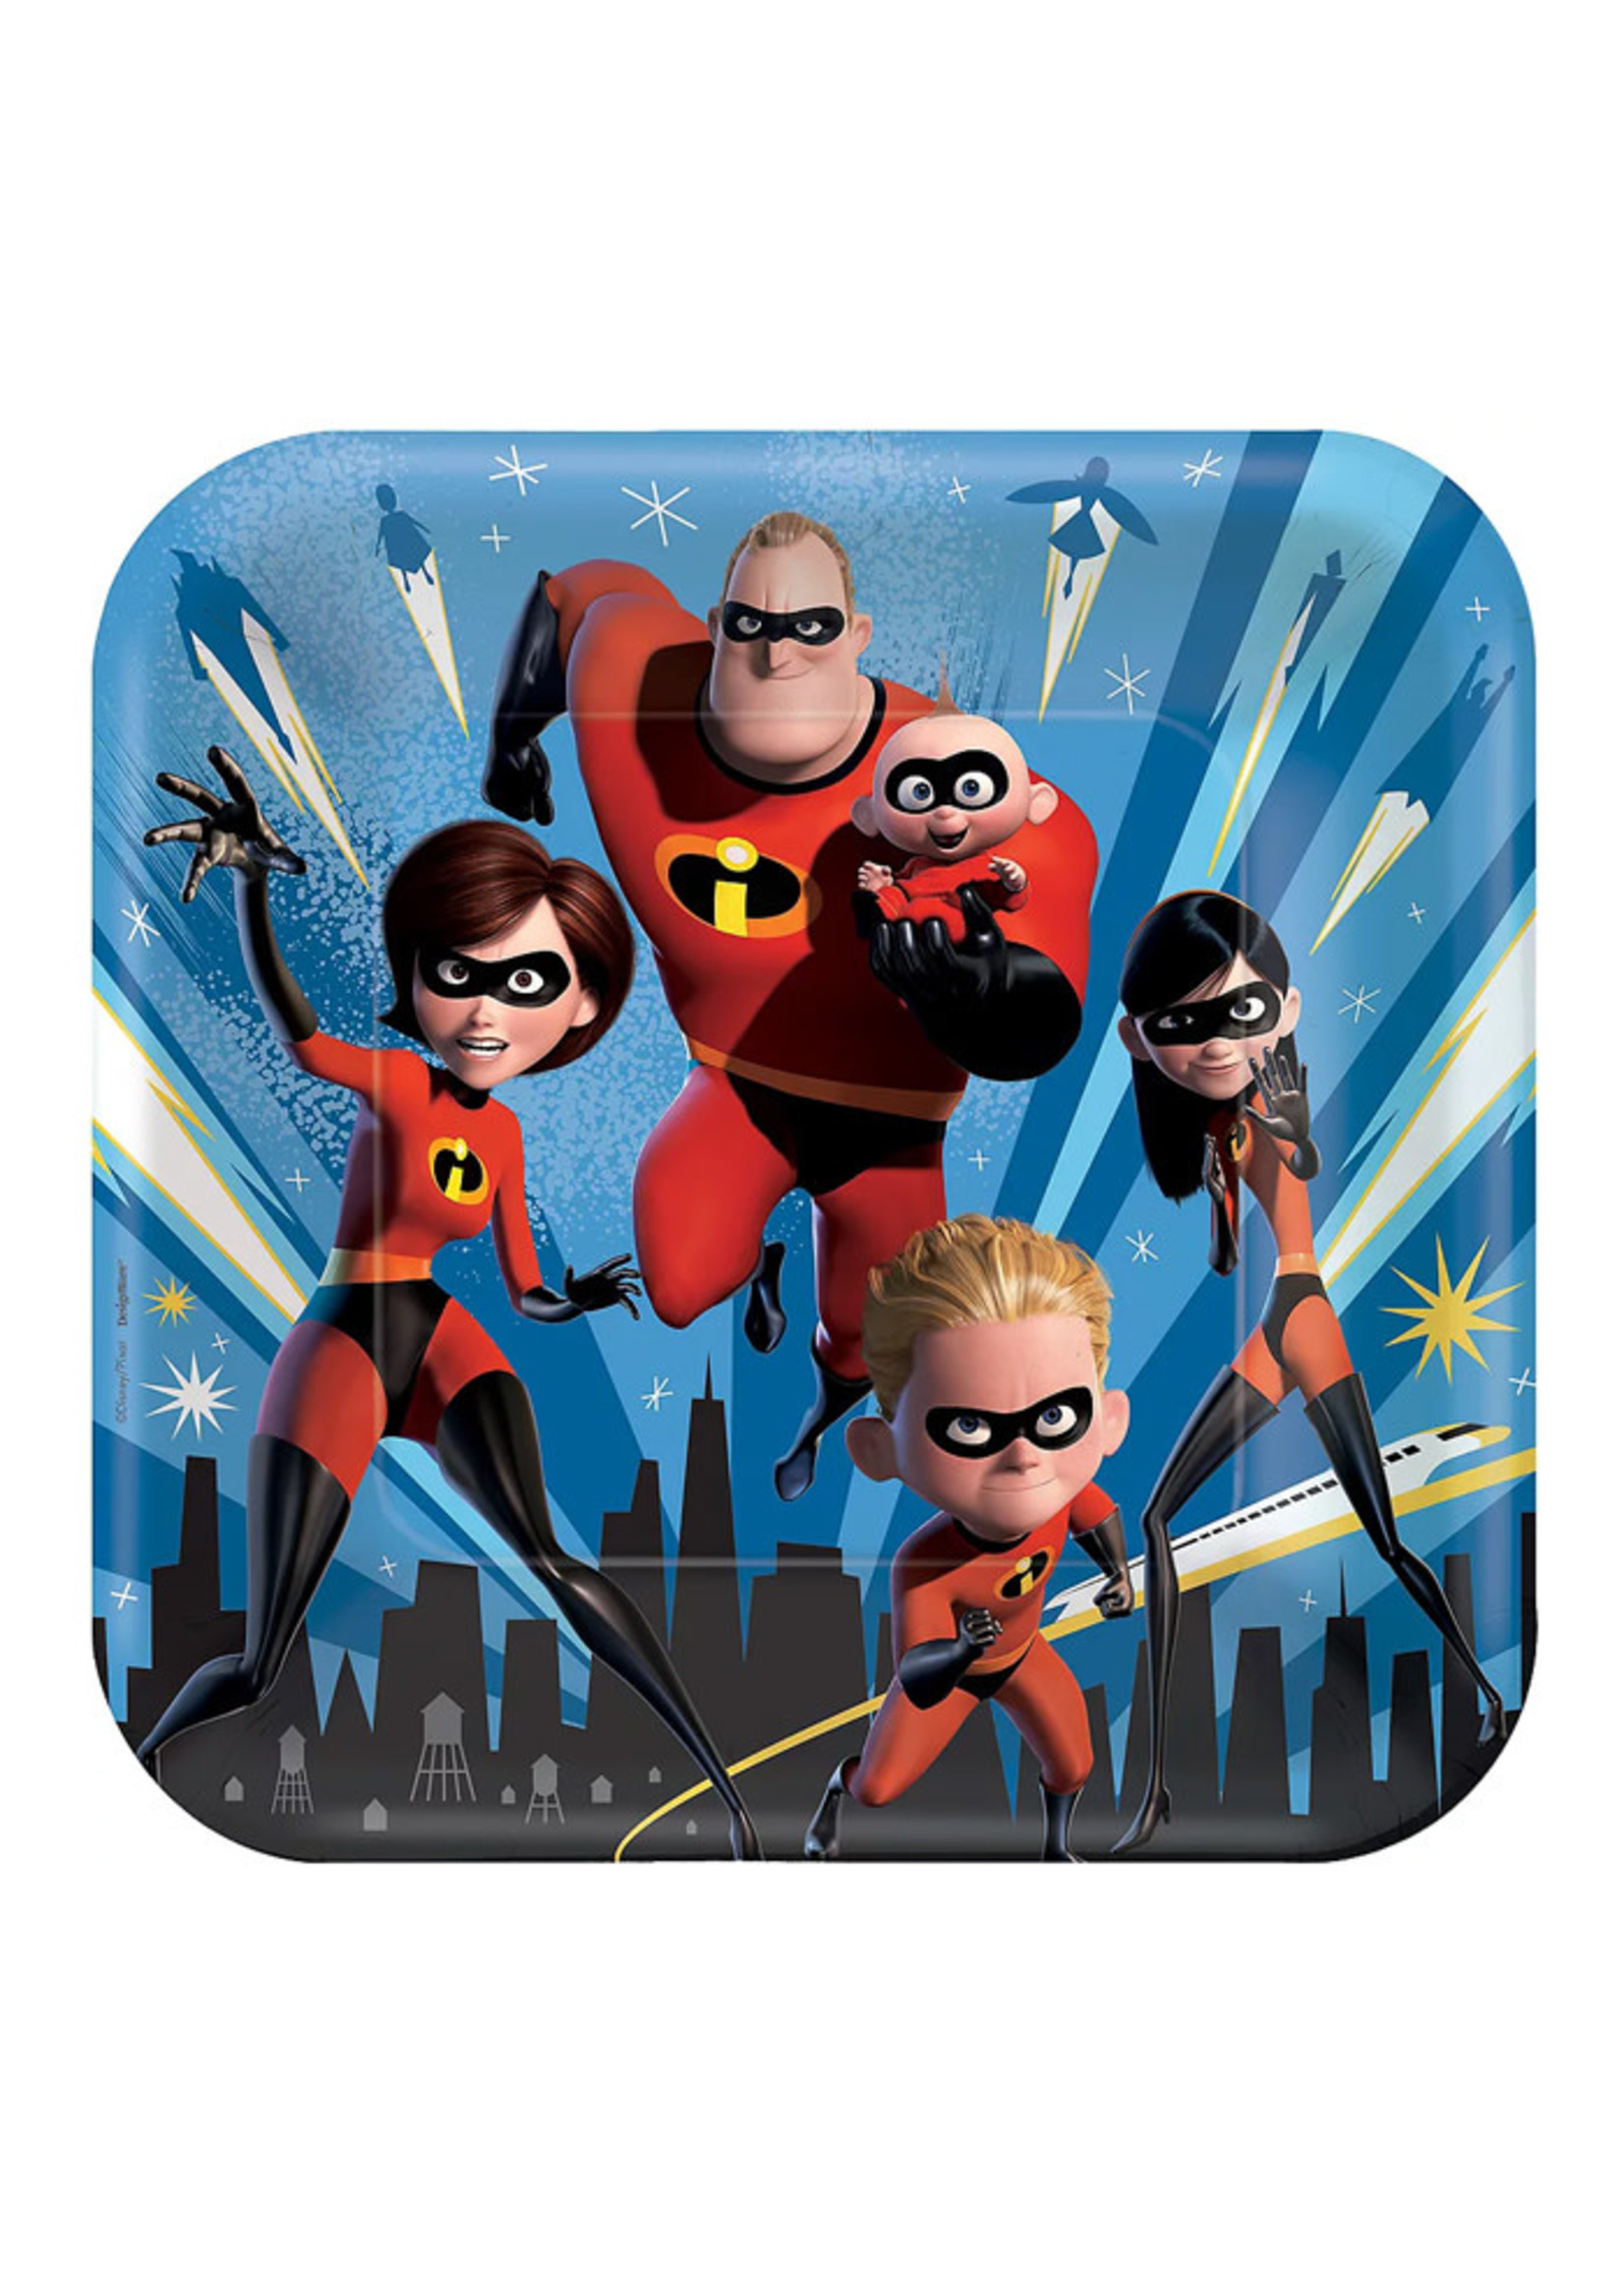 Incredibles 2 Lunch Plates 8ct